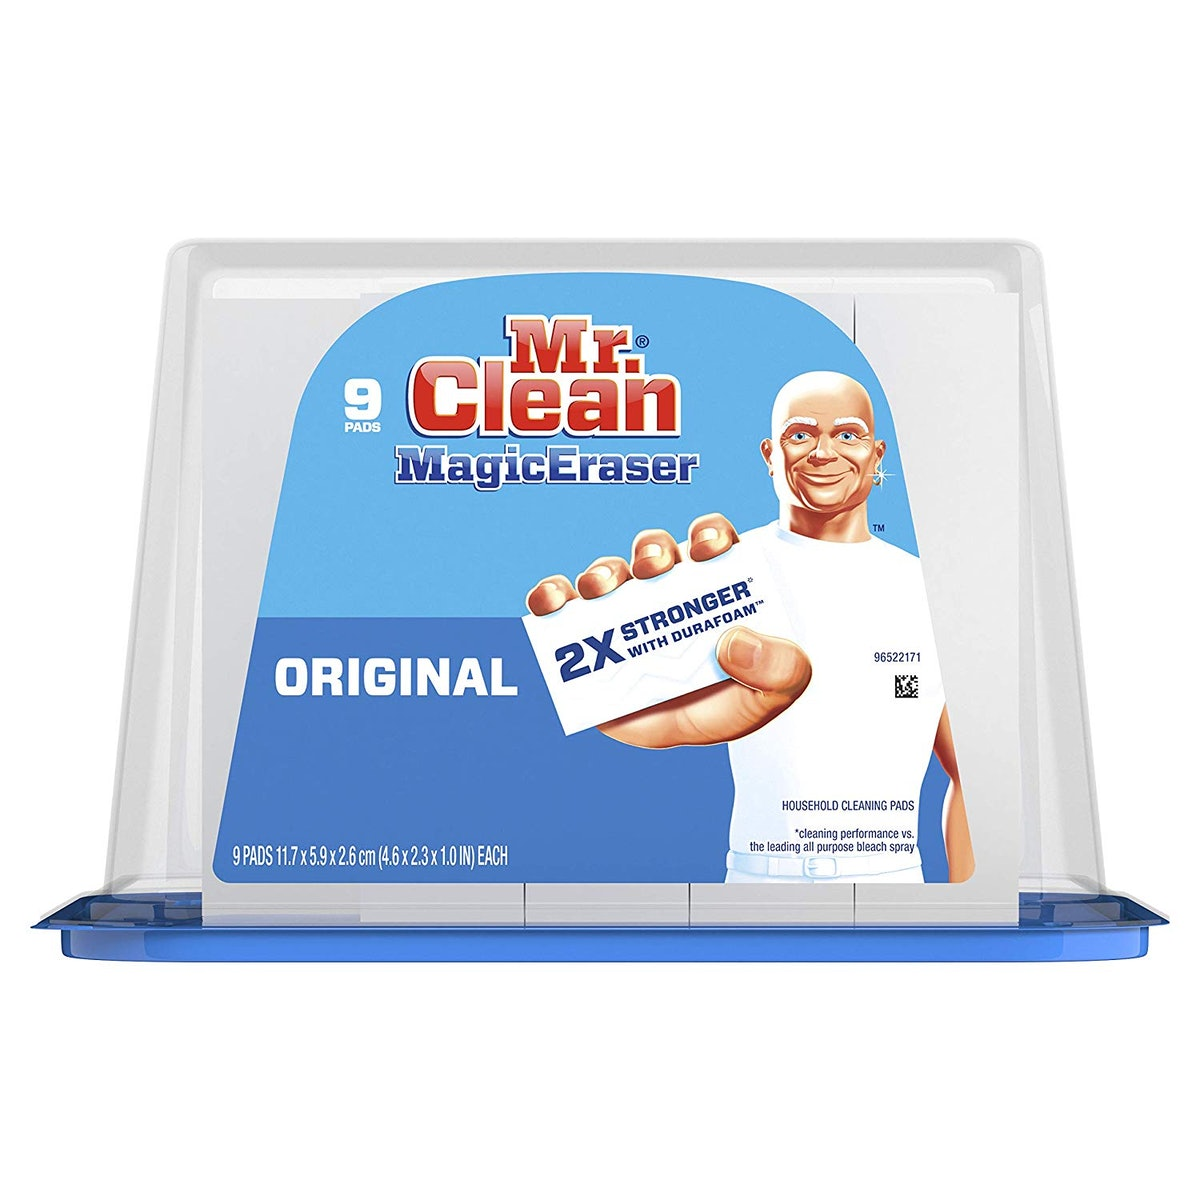 Mr. Clean Magic Eraser Cleaning Pads (9-Pack)